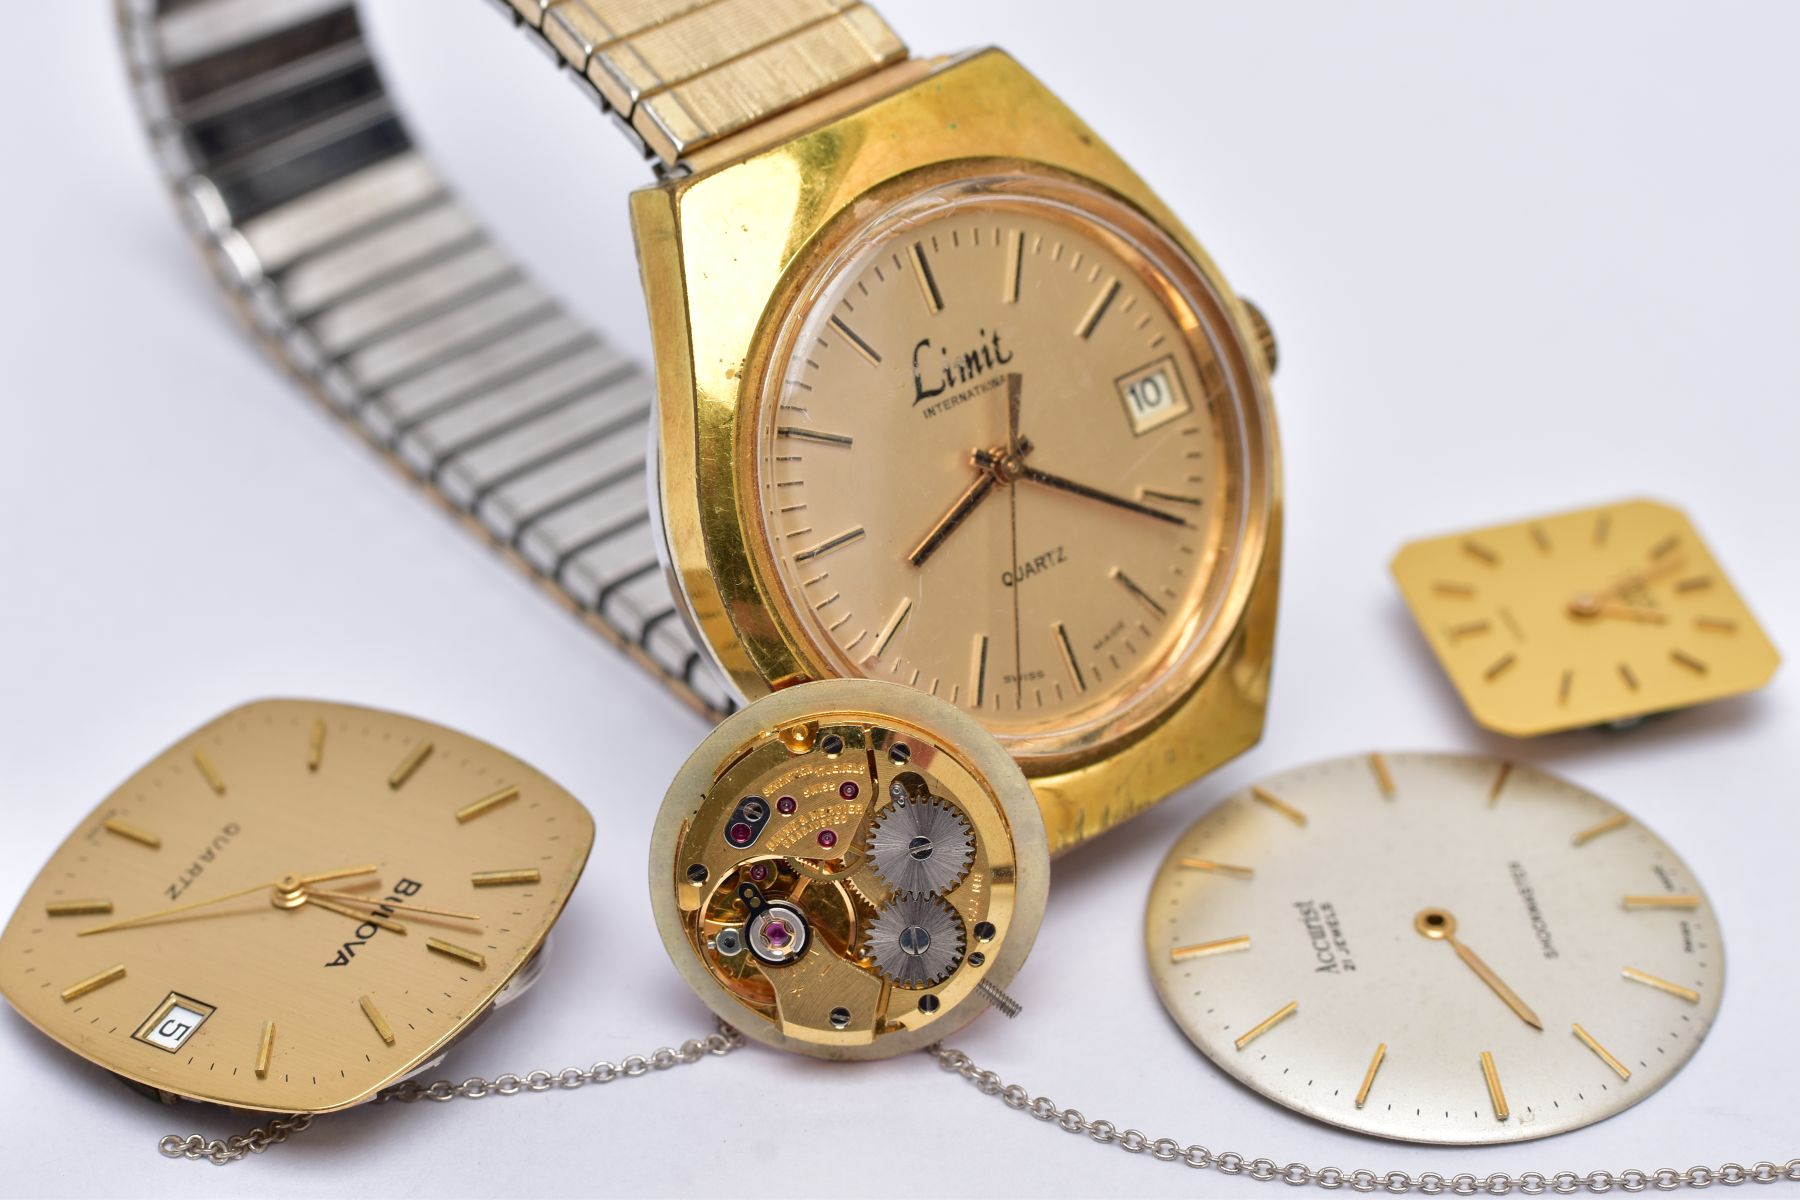 A GENTS 'LIMIT' WRISTWATCH AND WATCH PARTS, the quartz 'Limit' wristwatch, round gold dial signed ' - Image 5 of 7